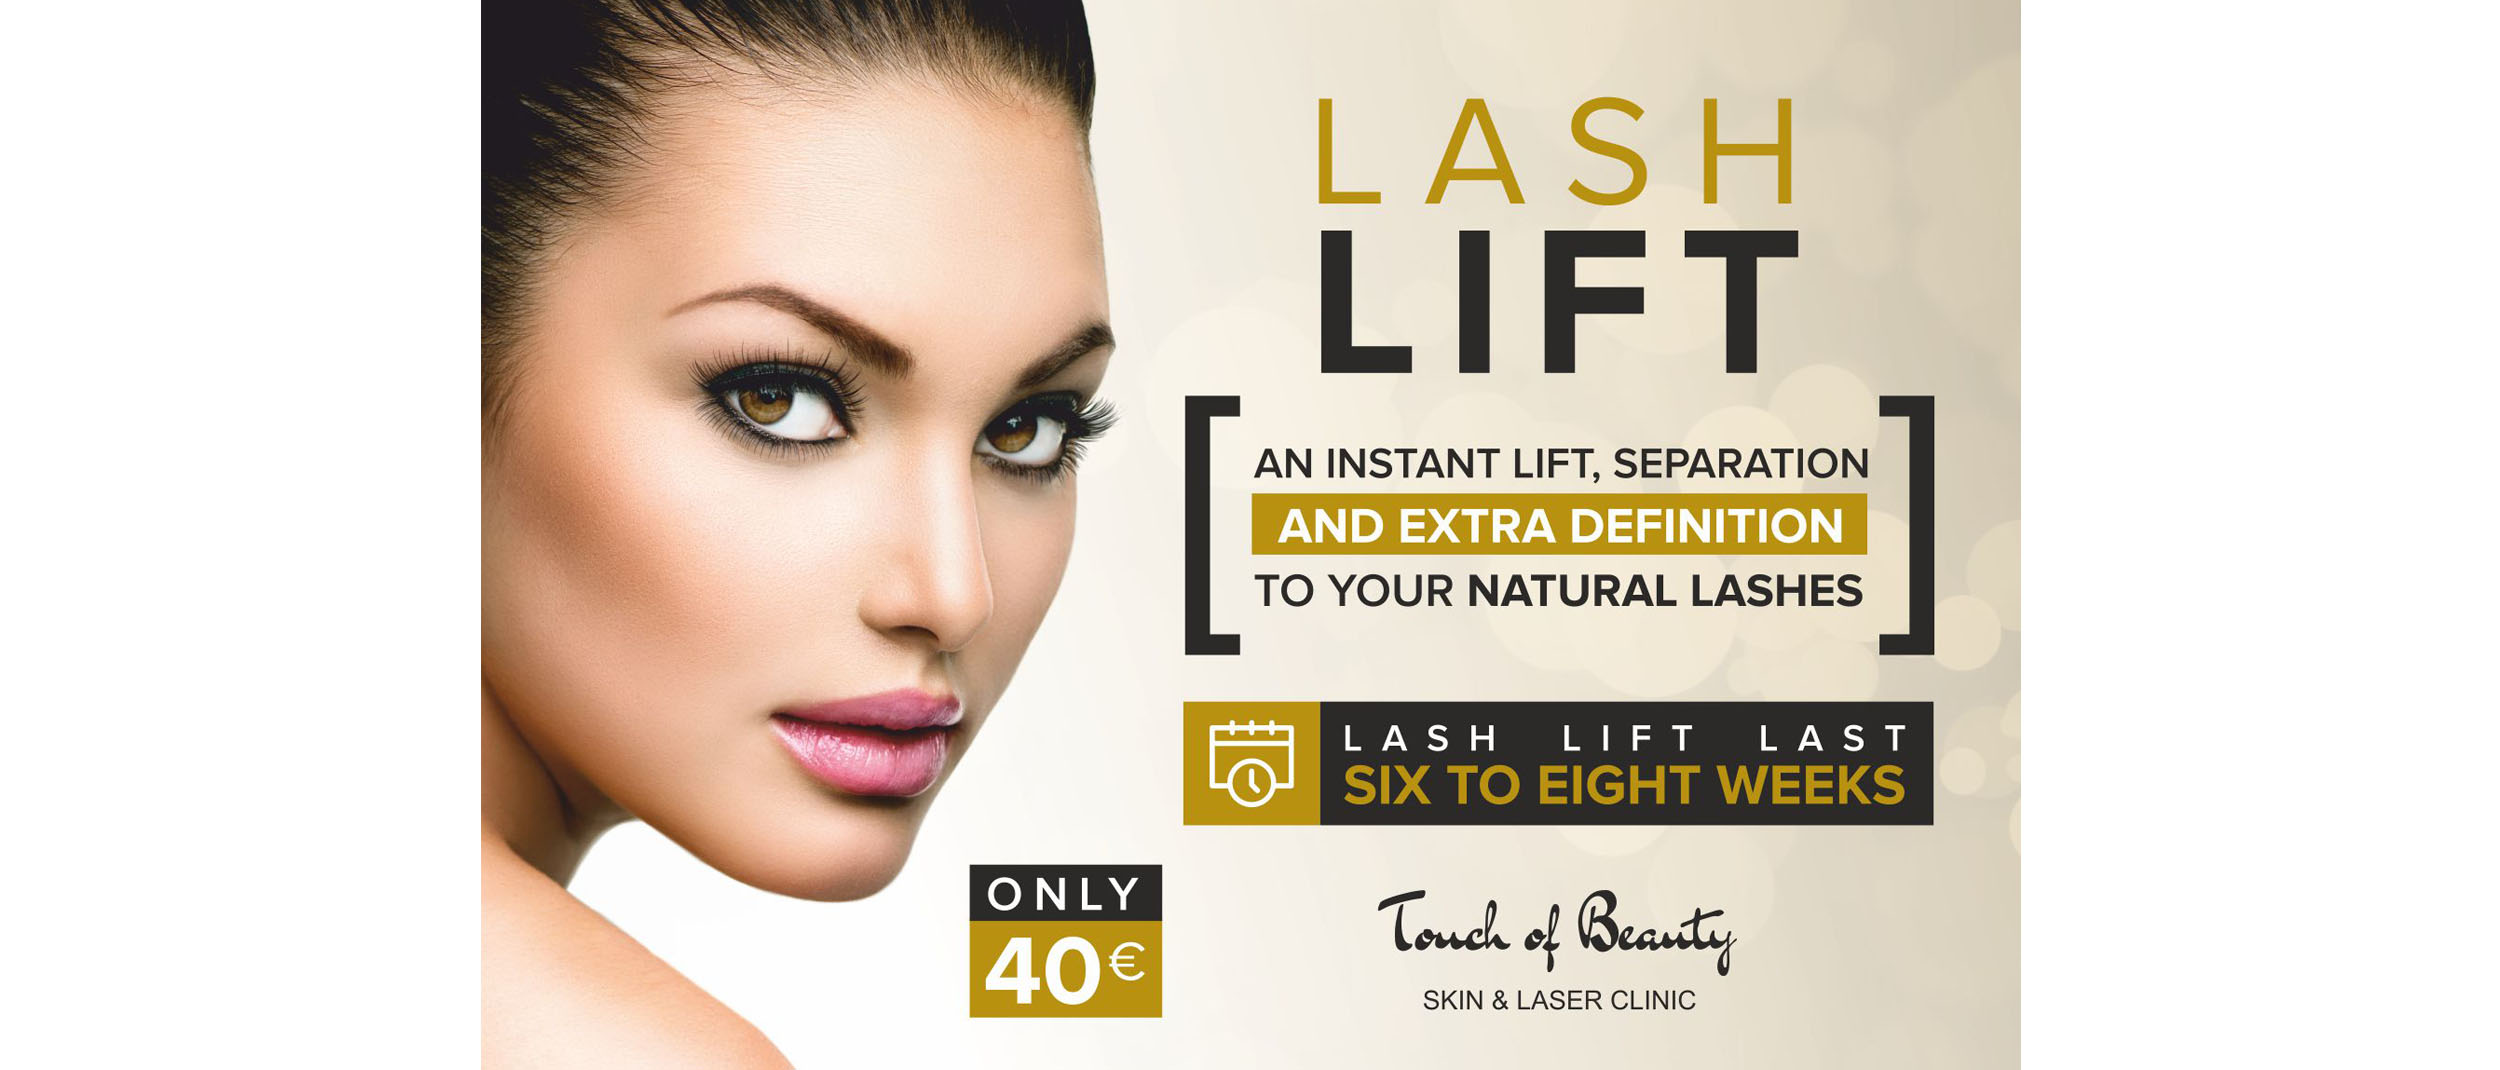 Lash Lift Offer - Touch of Beauty Cork